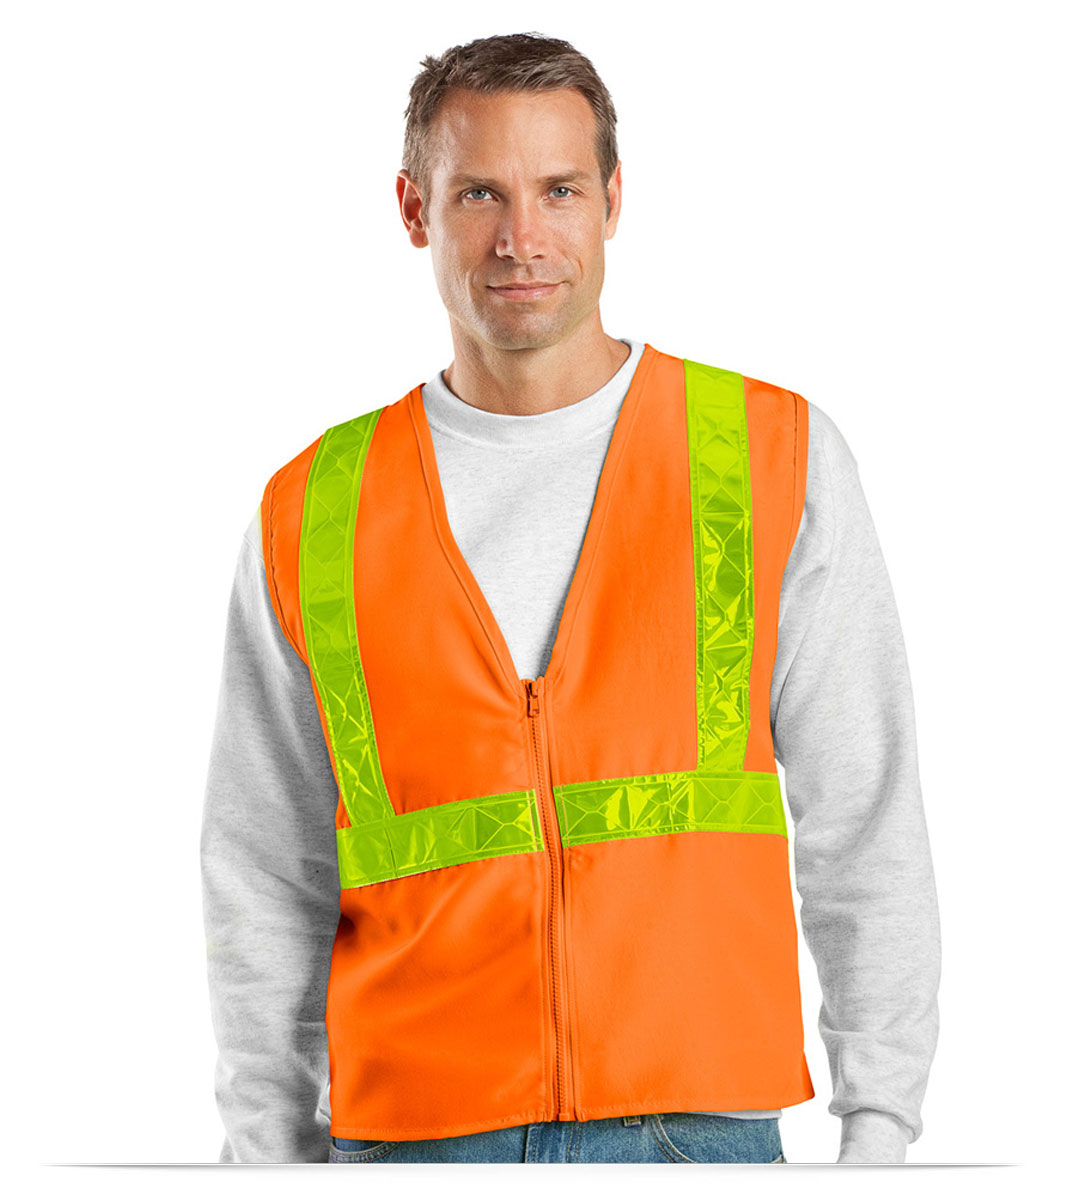 Personalized Safety Vest